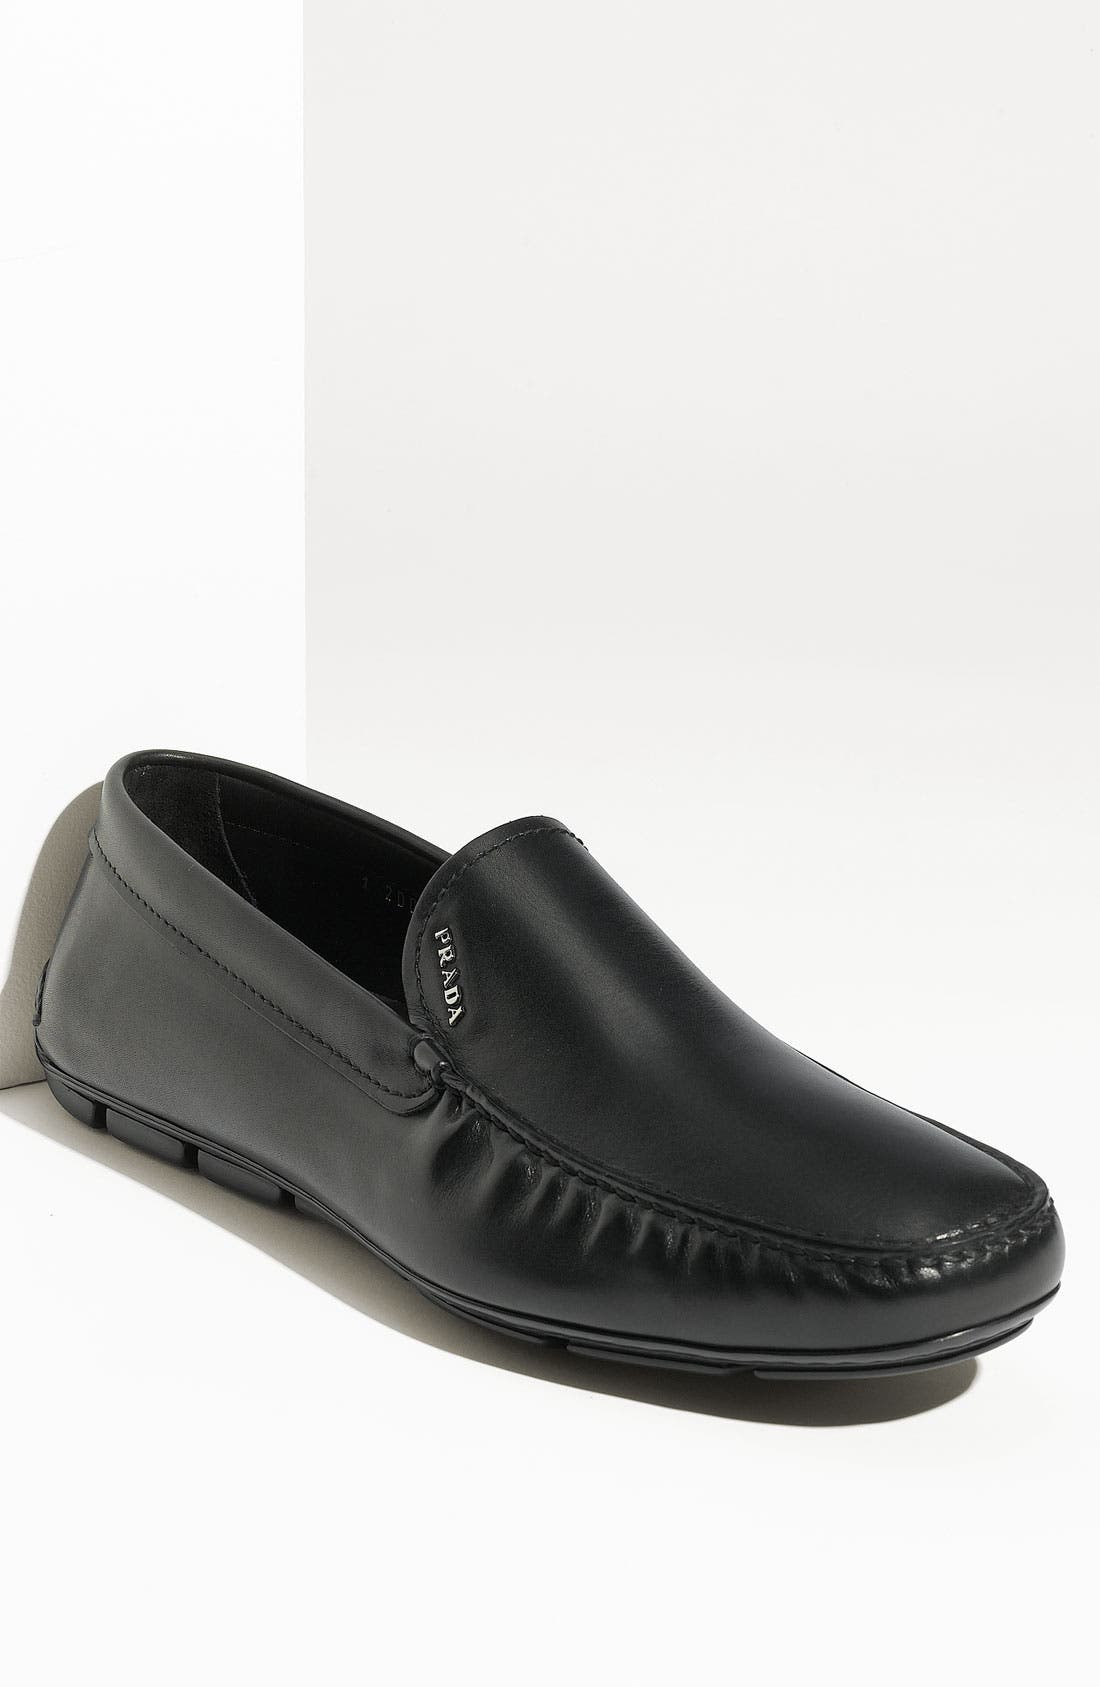 Main Image - Prada Leather Driving Shoe (Men)